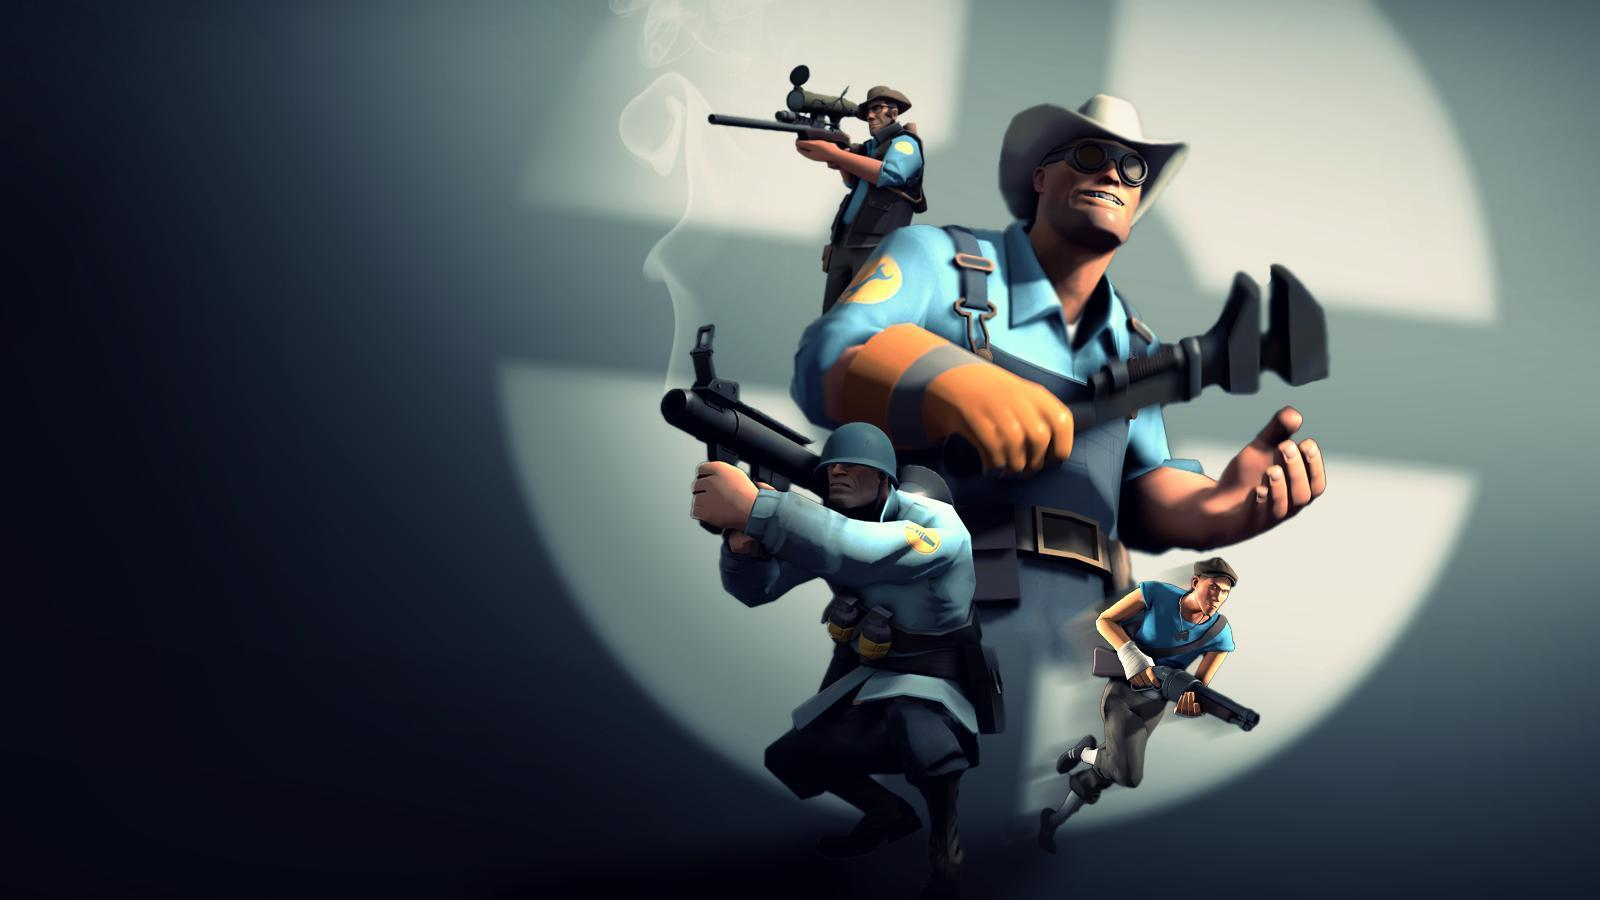 Team Fortress 2 BLU Wallpapers HD Game Wallpape HD Game